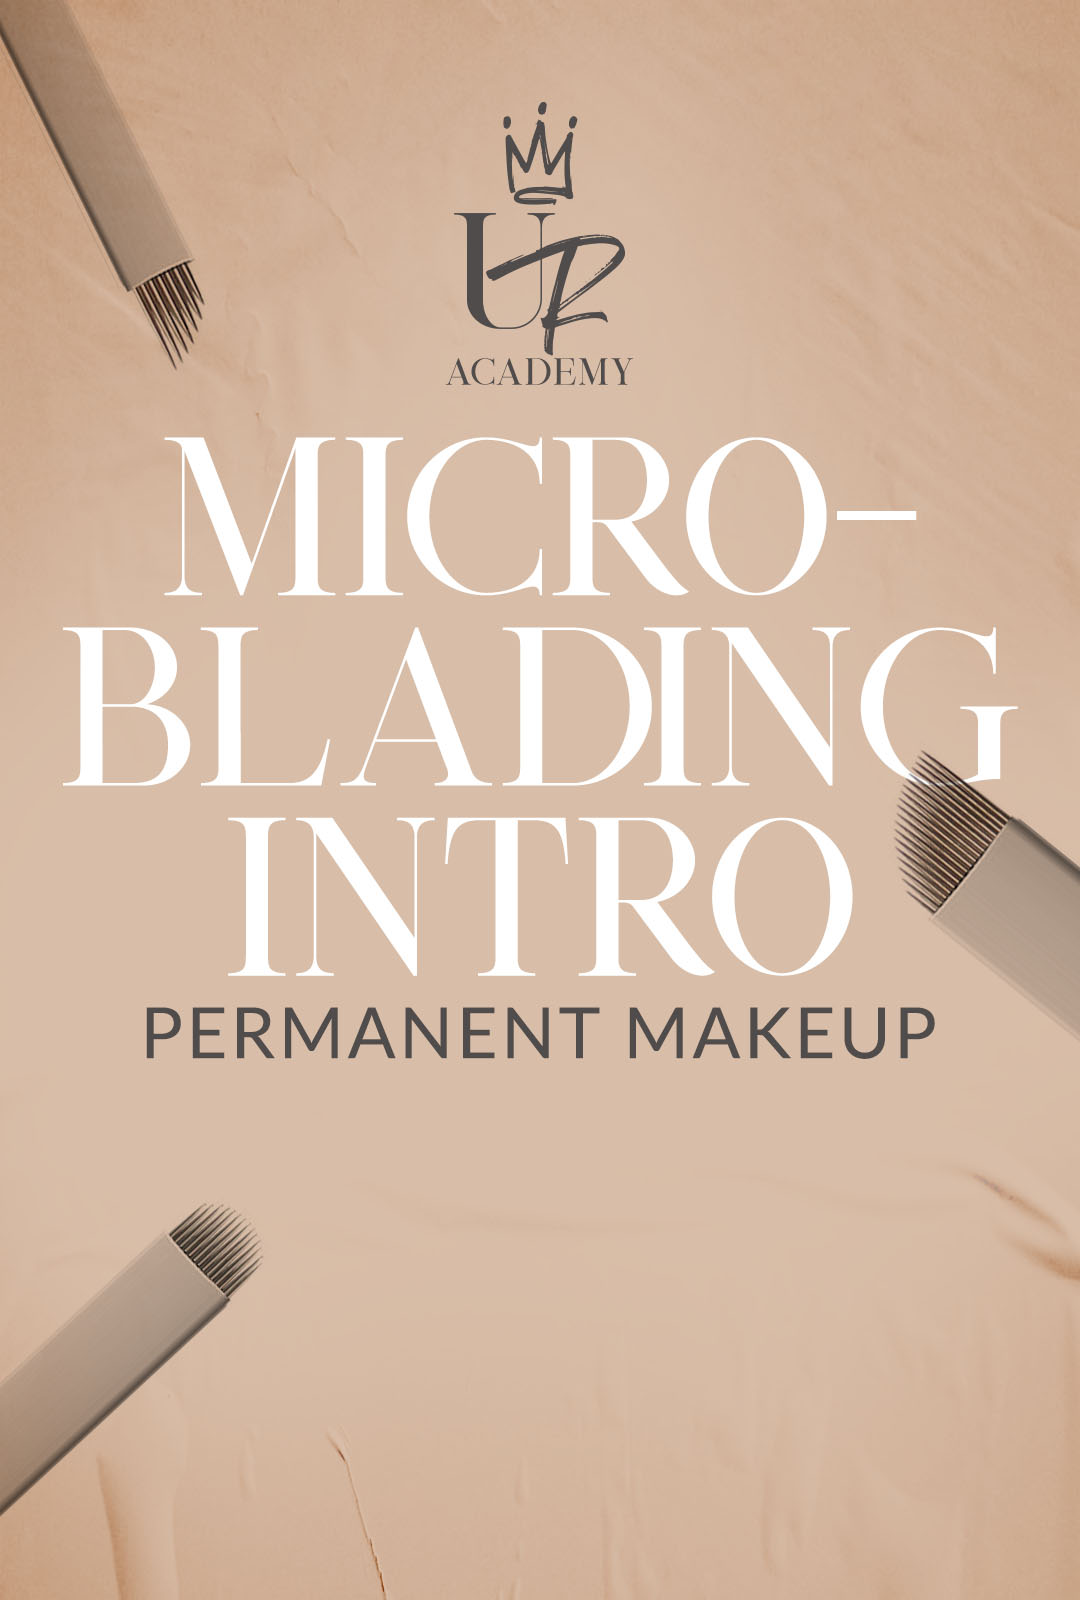 Microblading Brows